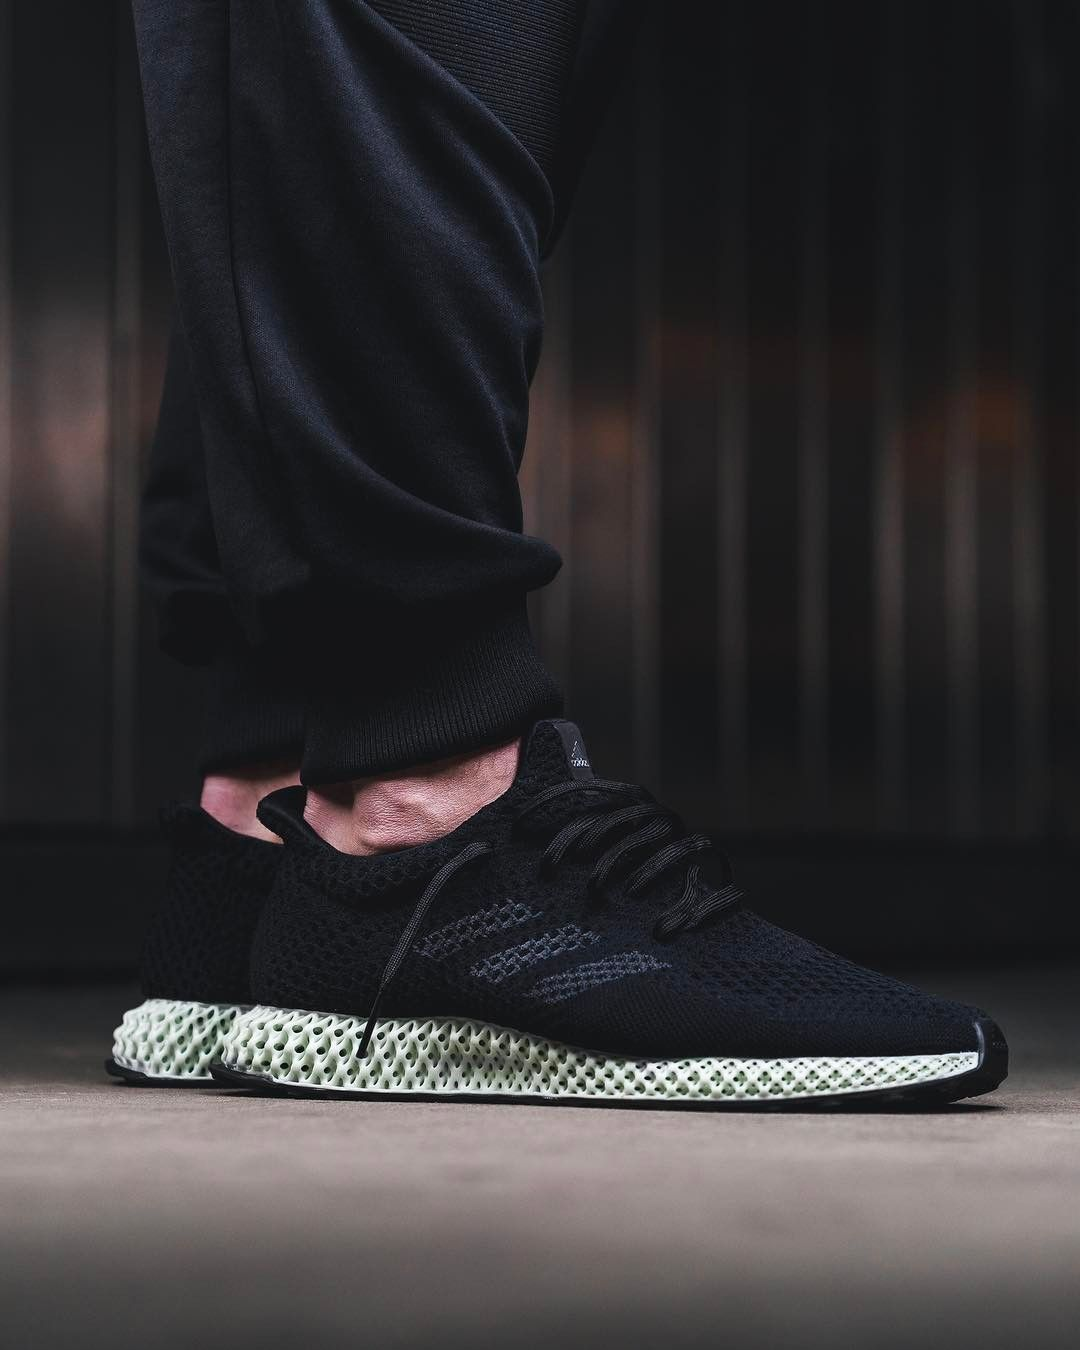 Adidas Futurecraft 4D. 3D Printed Soles With Primeknit